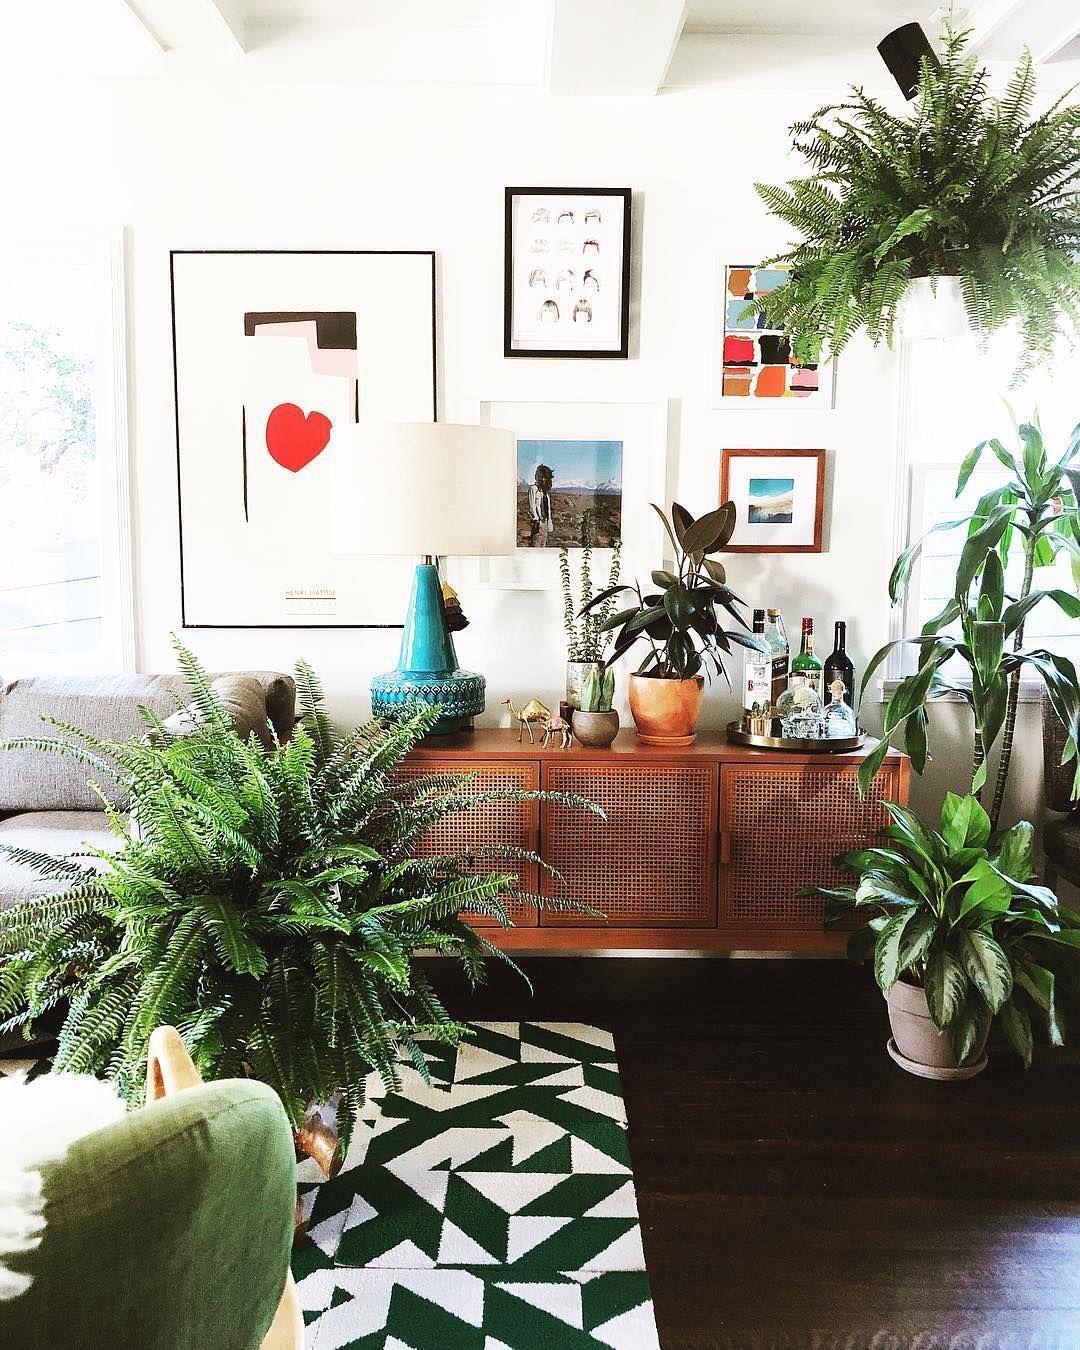 Use Twisted Spokes For Your Jungle Inspired Living Room Interior Design Never Looked So Modern Shop Fl Interior Paint Interior Paint Colors Living Room Paint Jungle living room ideas